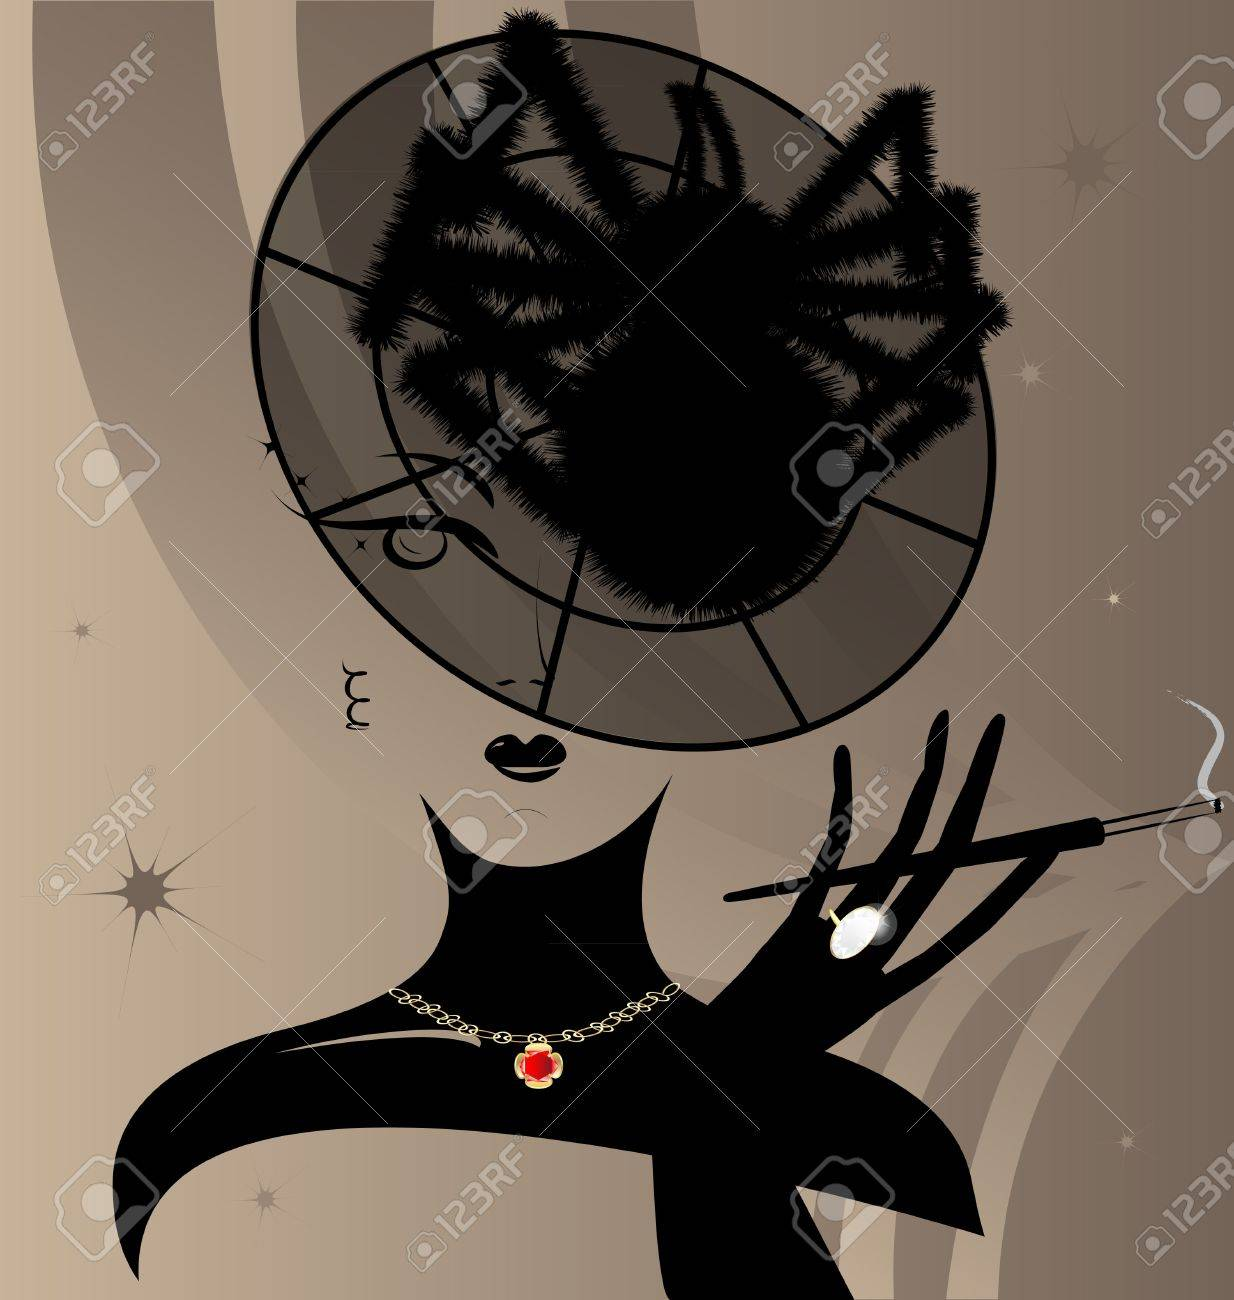 on a beige background with an abstract pattern of shapes face the mysterious lady in a translucent cap with a big black spider - 9427162